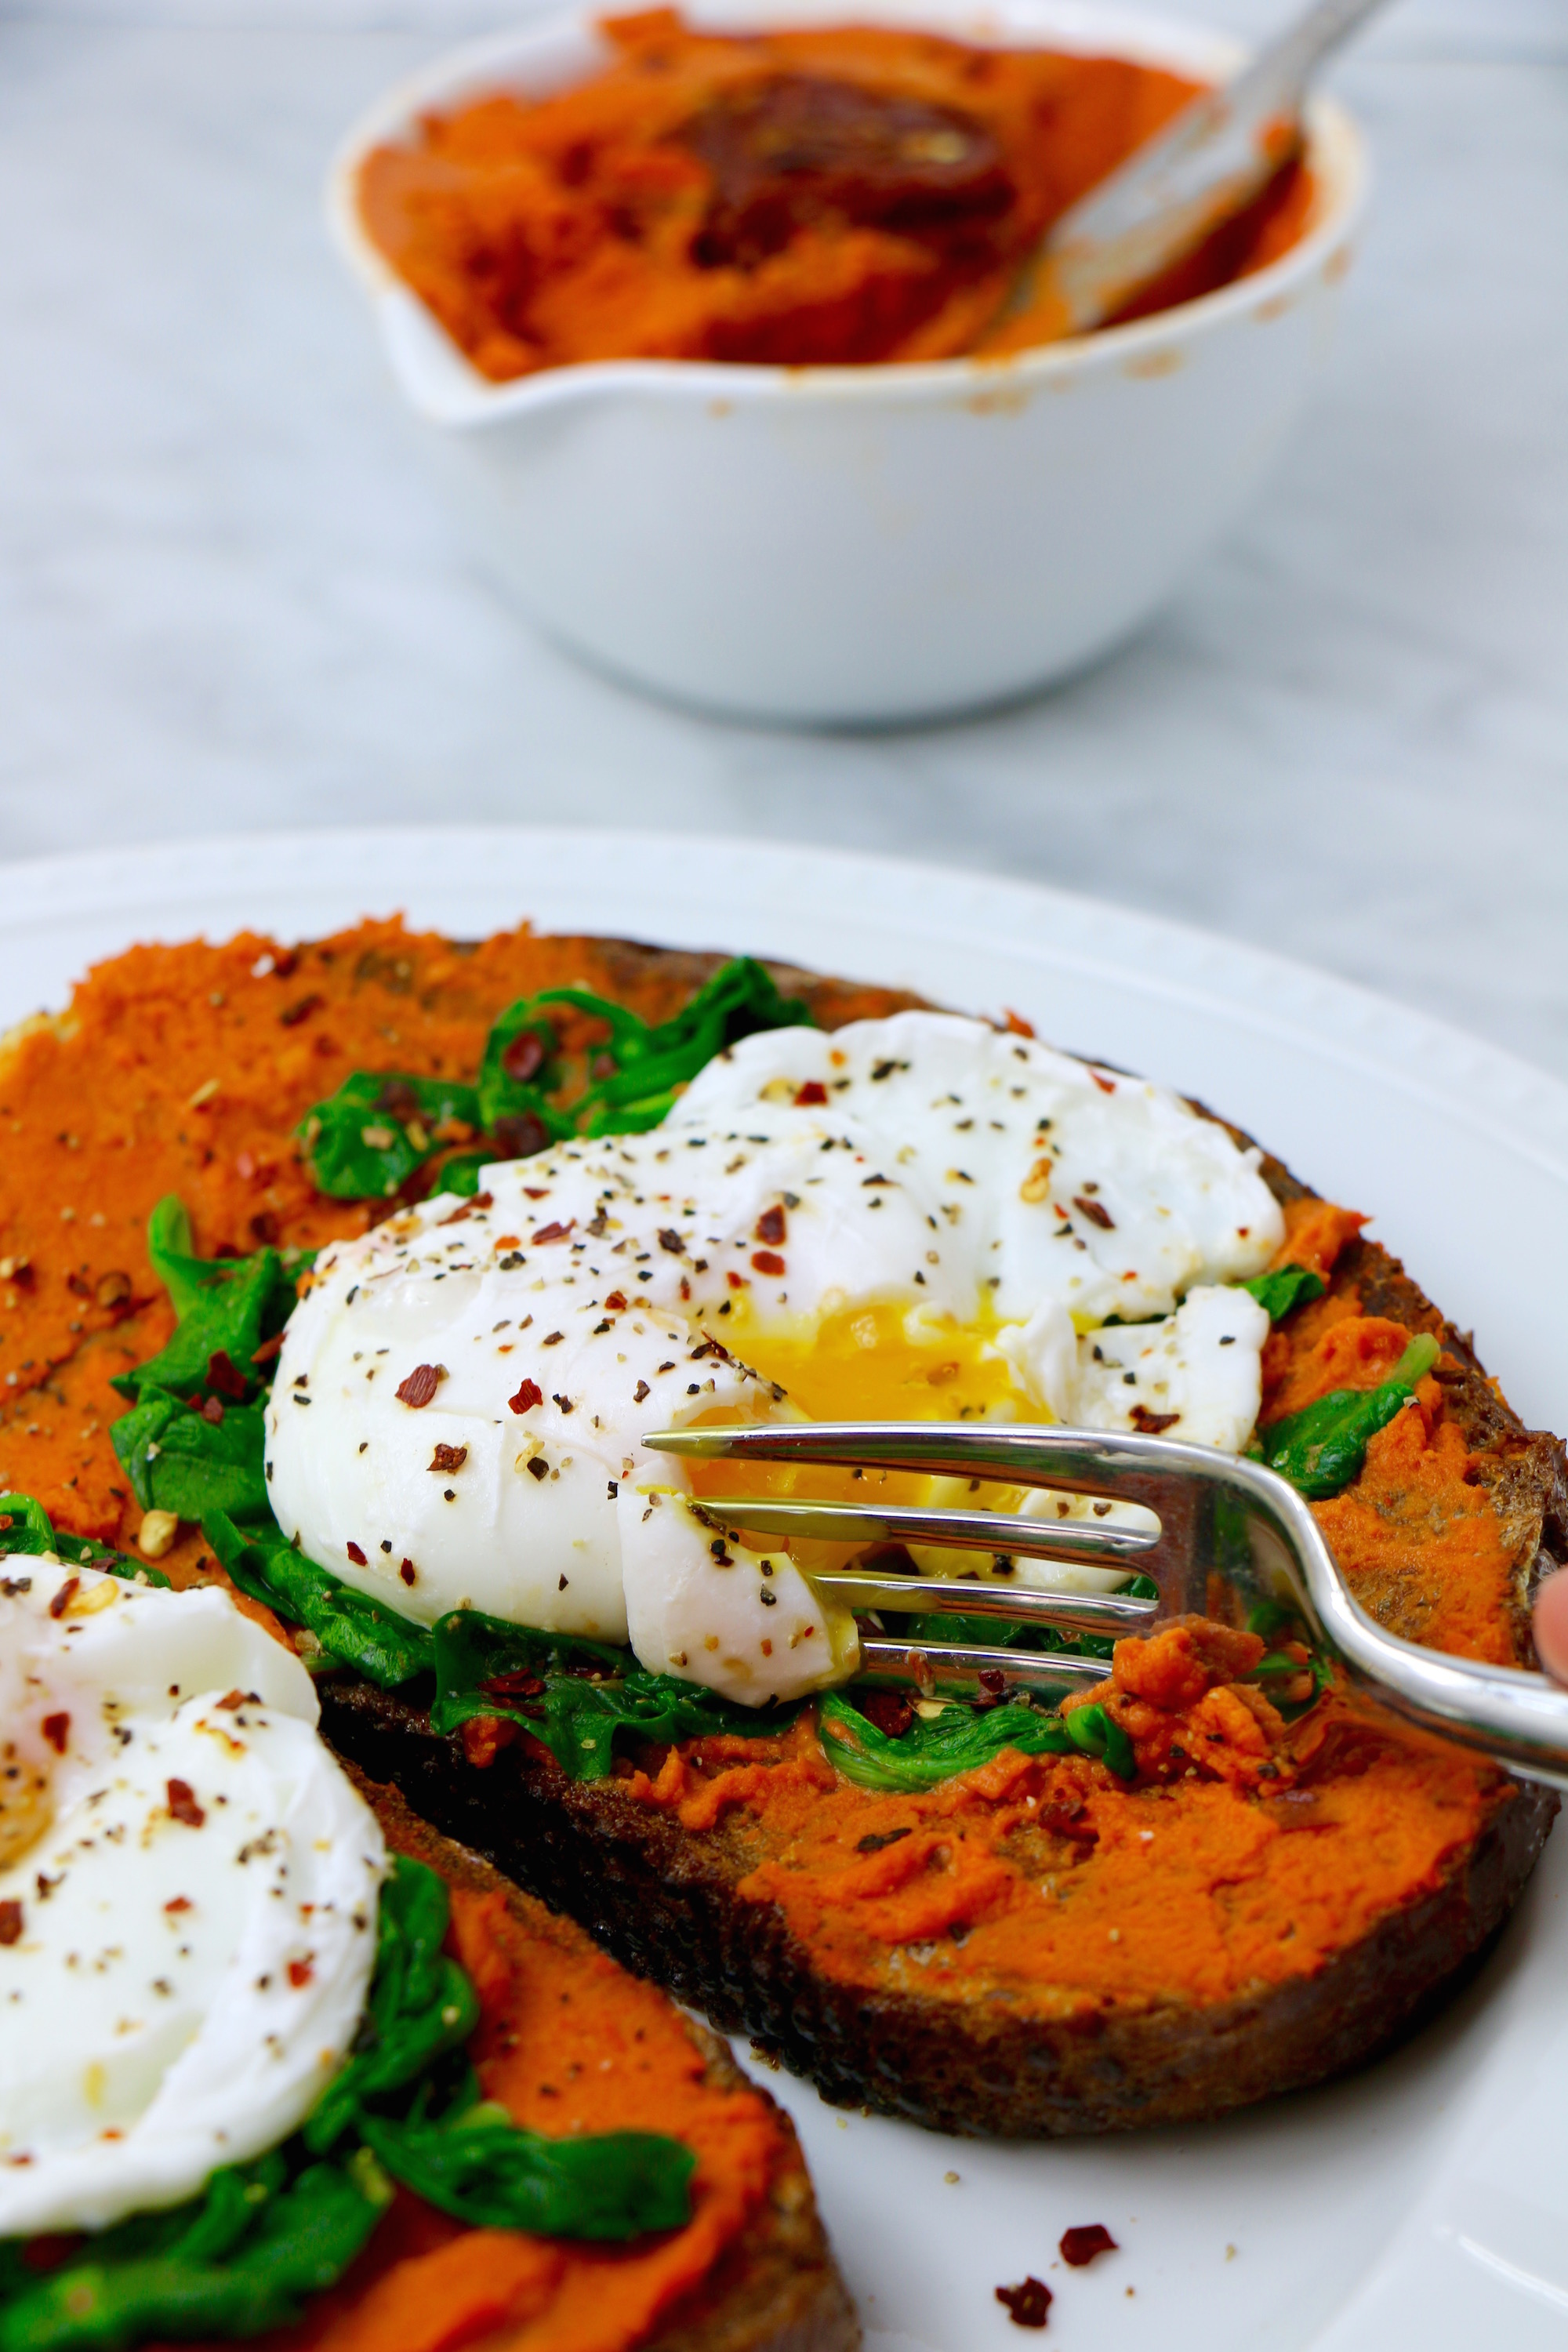 Savory French Toast with Poached Eggs